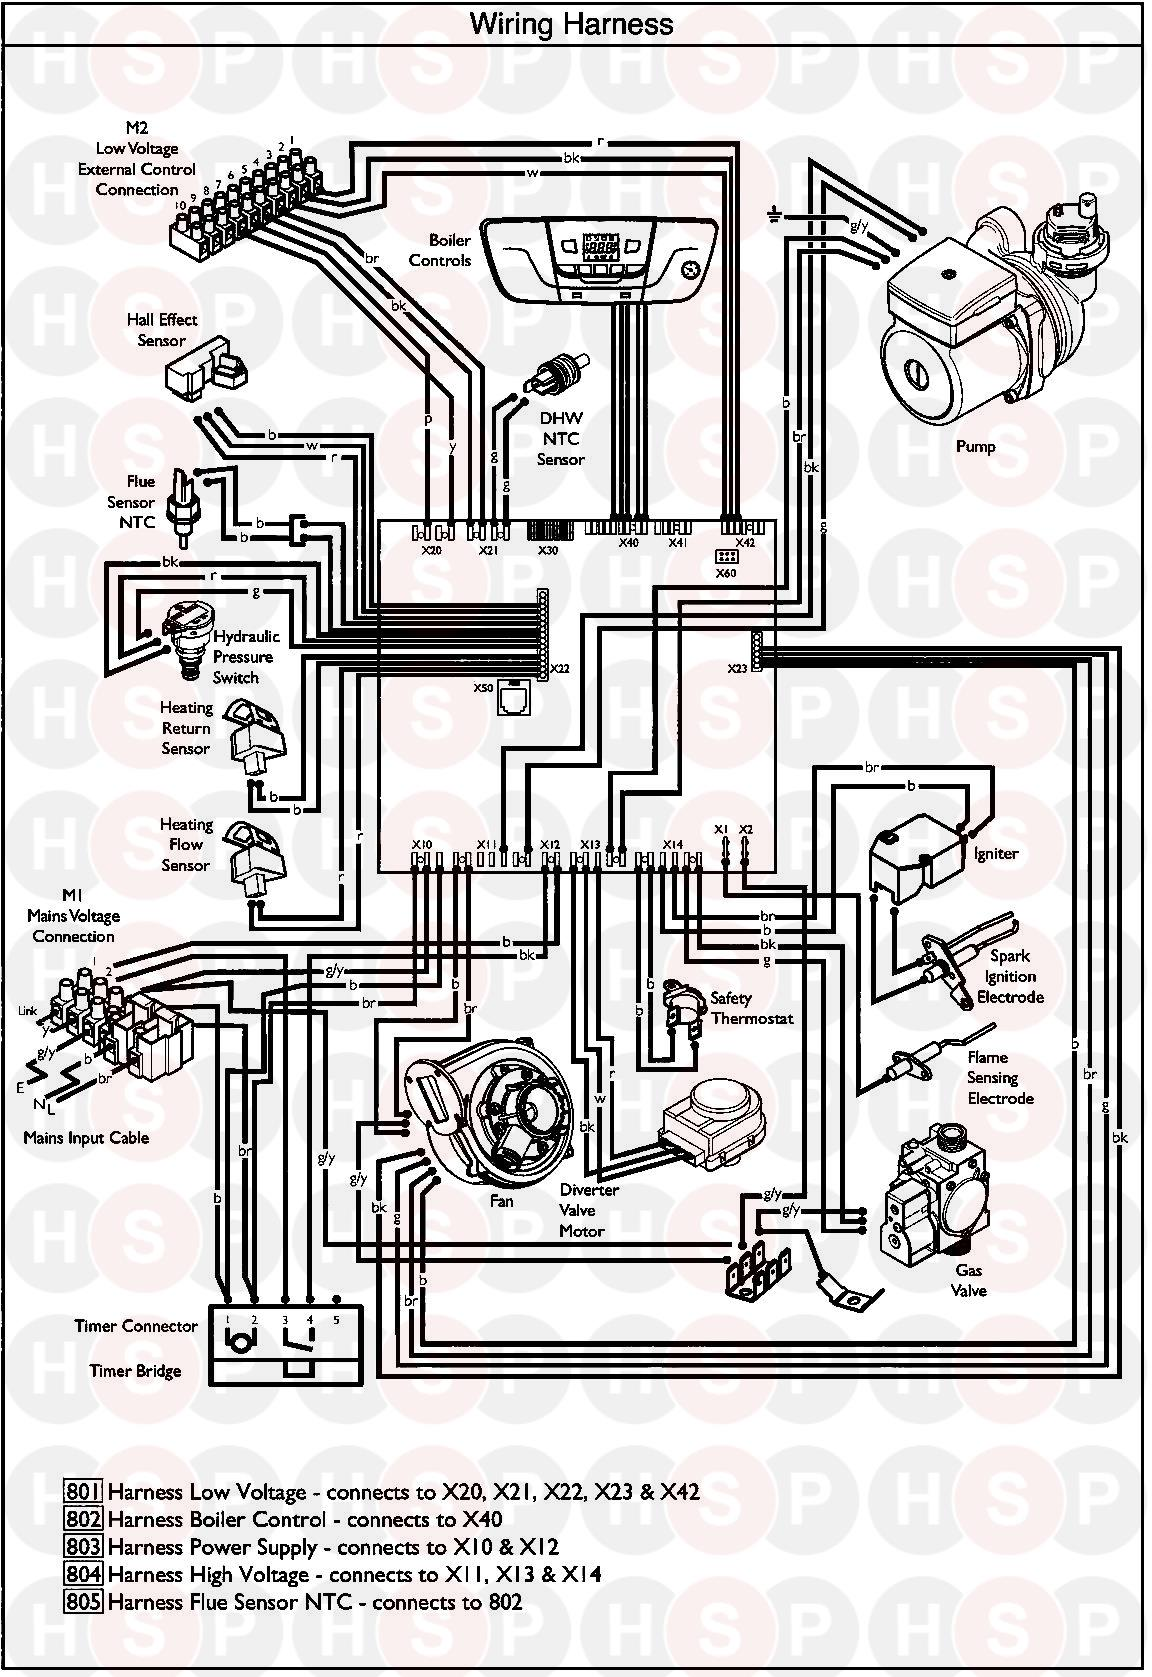 Baxi EcoBlue Advance Combi 33 Appliance Diagram (WIRING